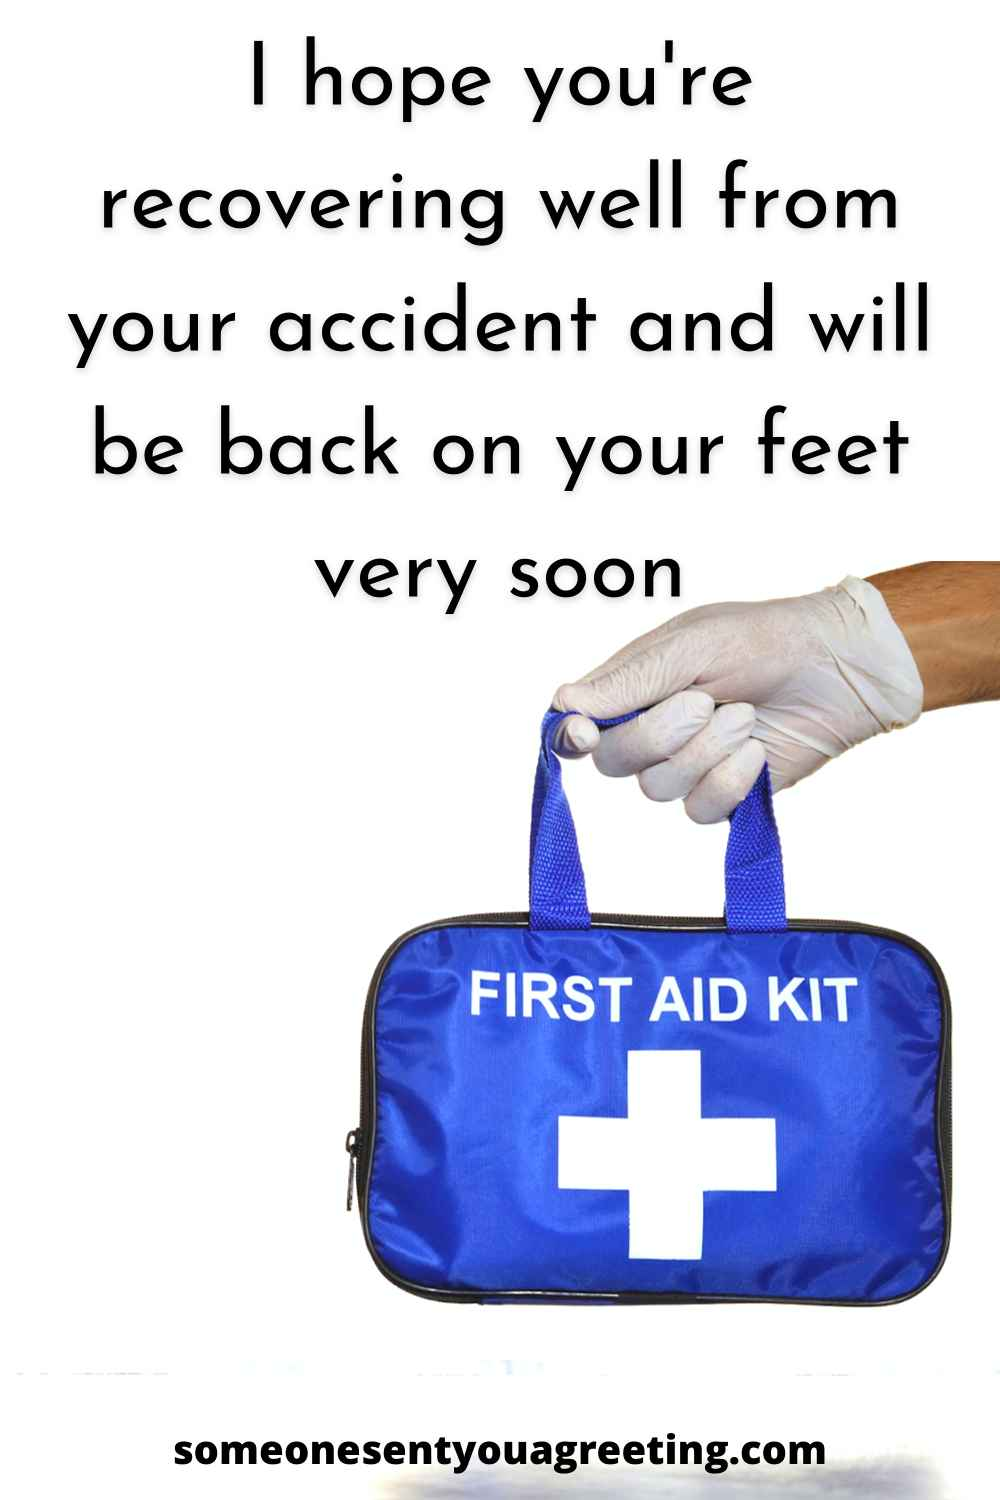 recovery wishes for accident